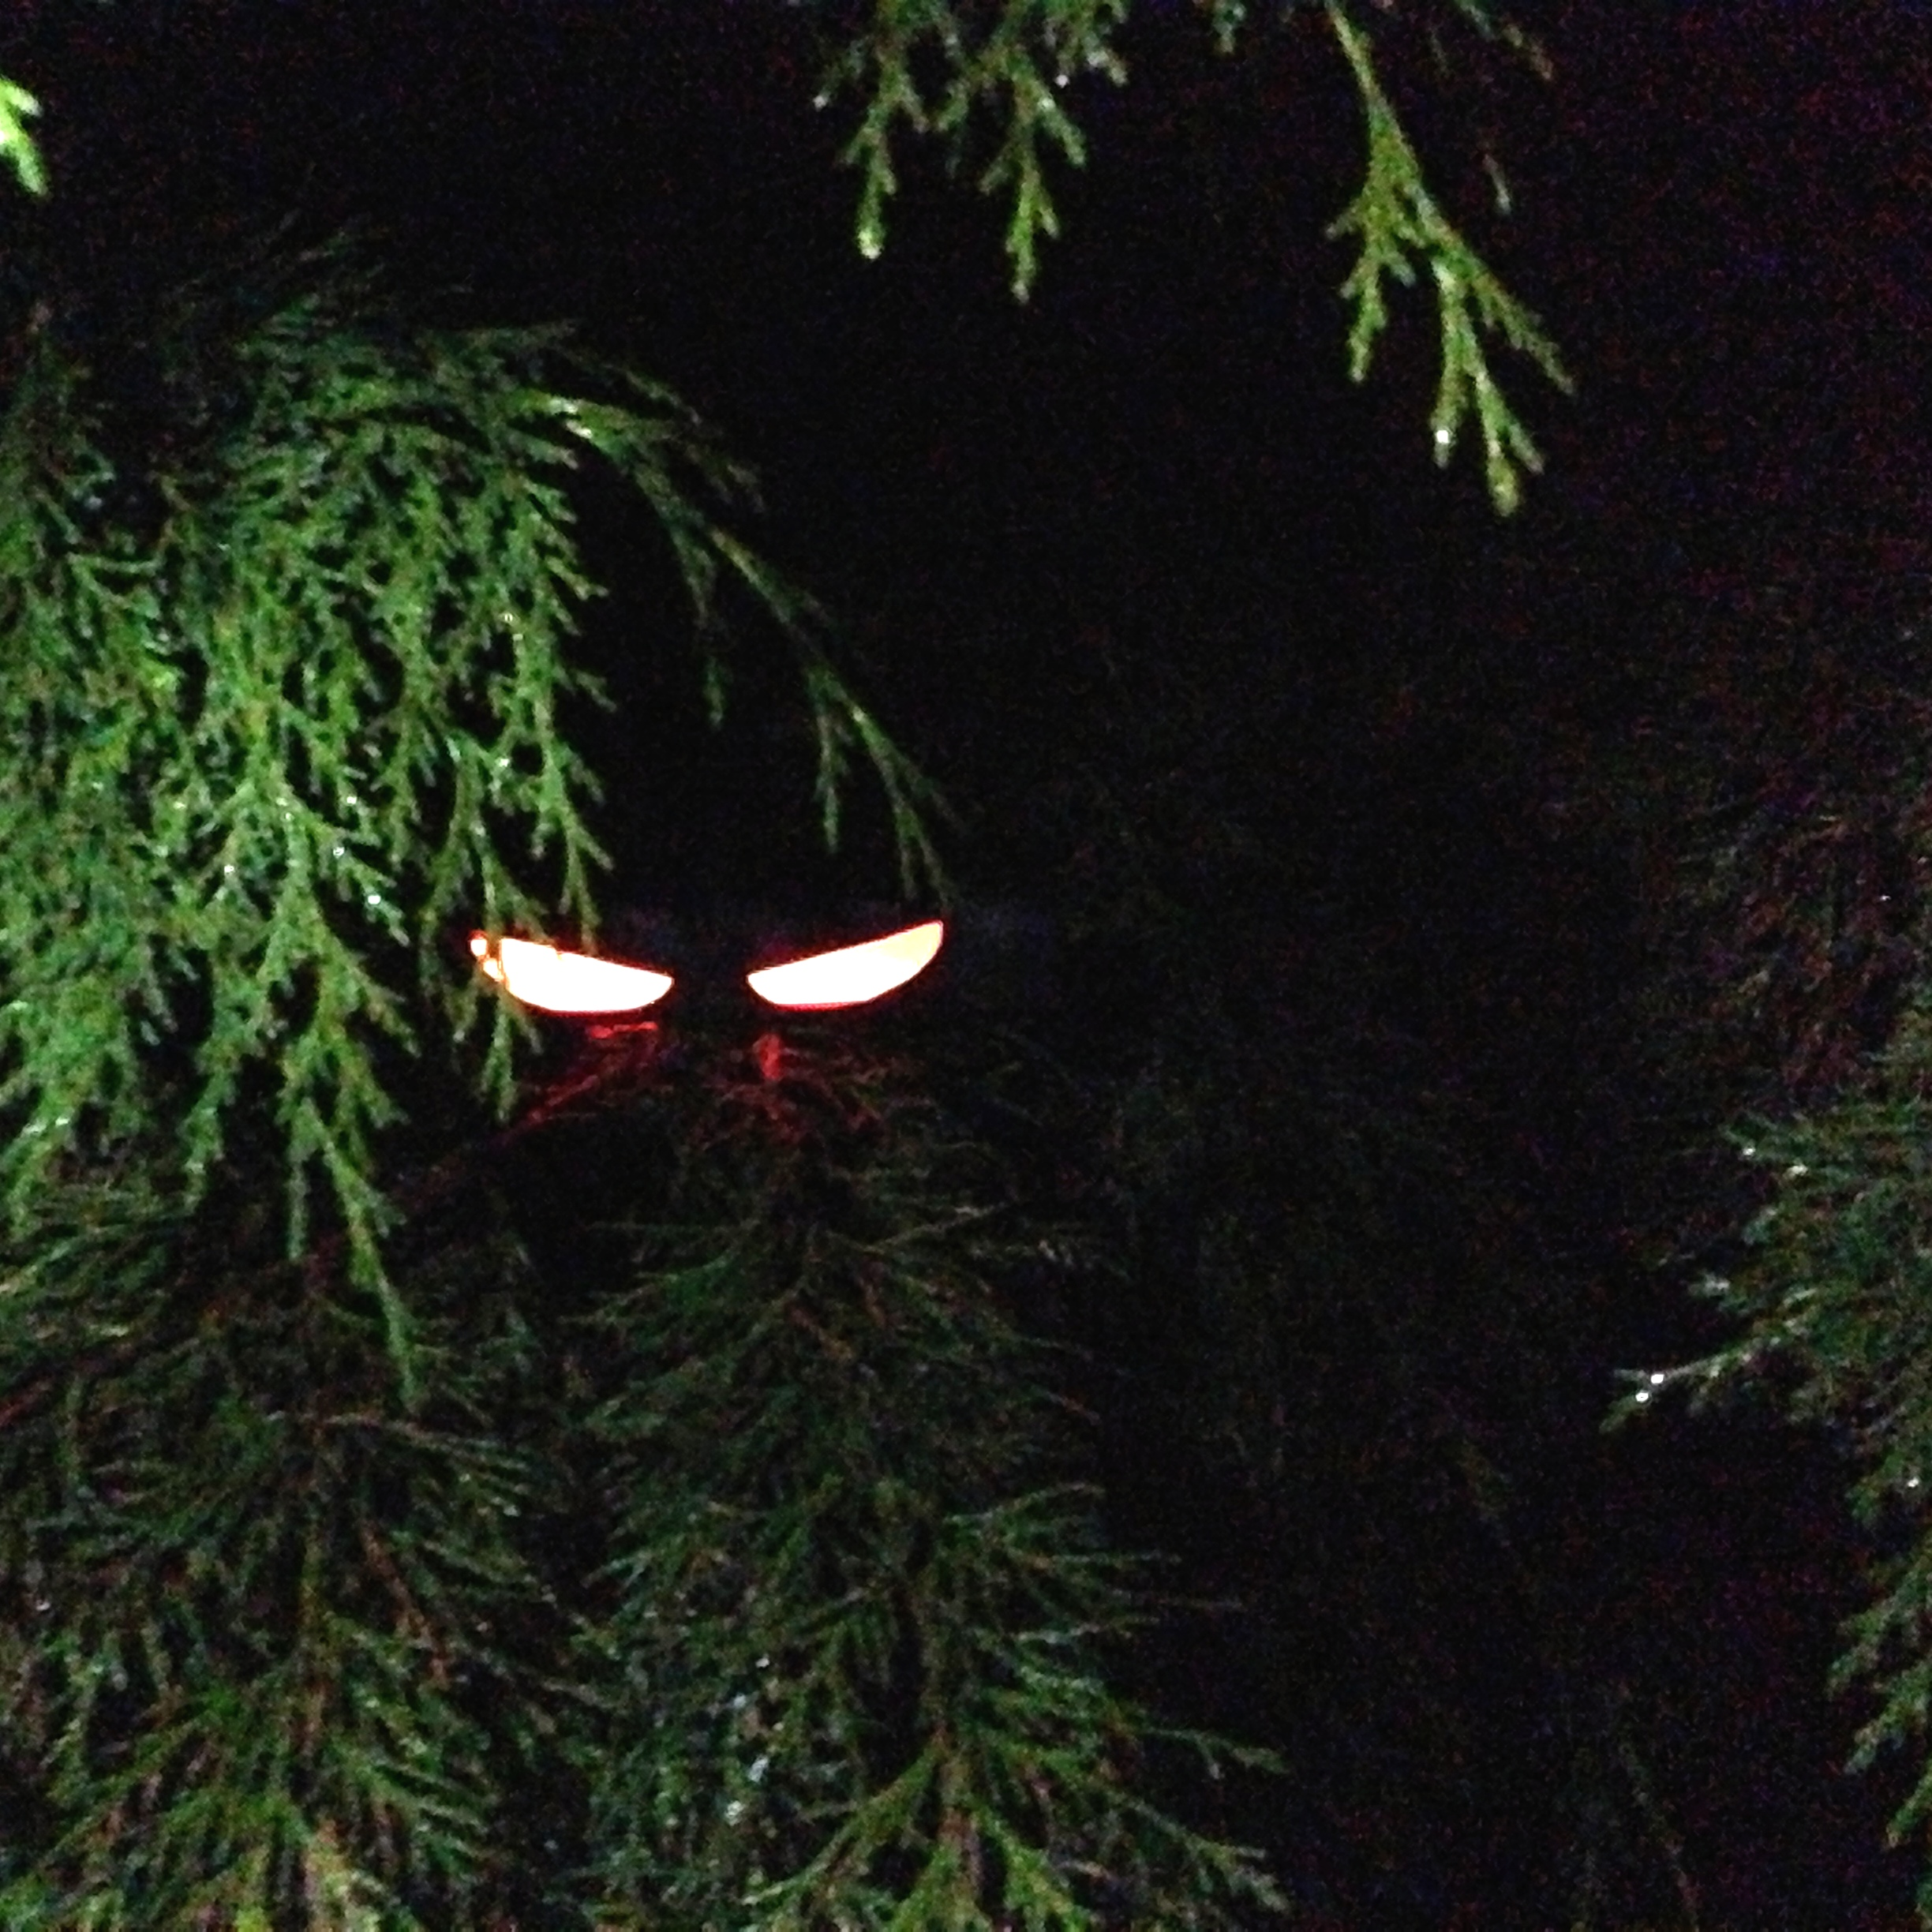 eerie glow stick halloween eyes – netninja